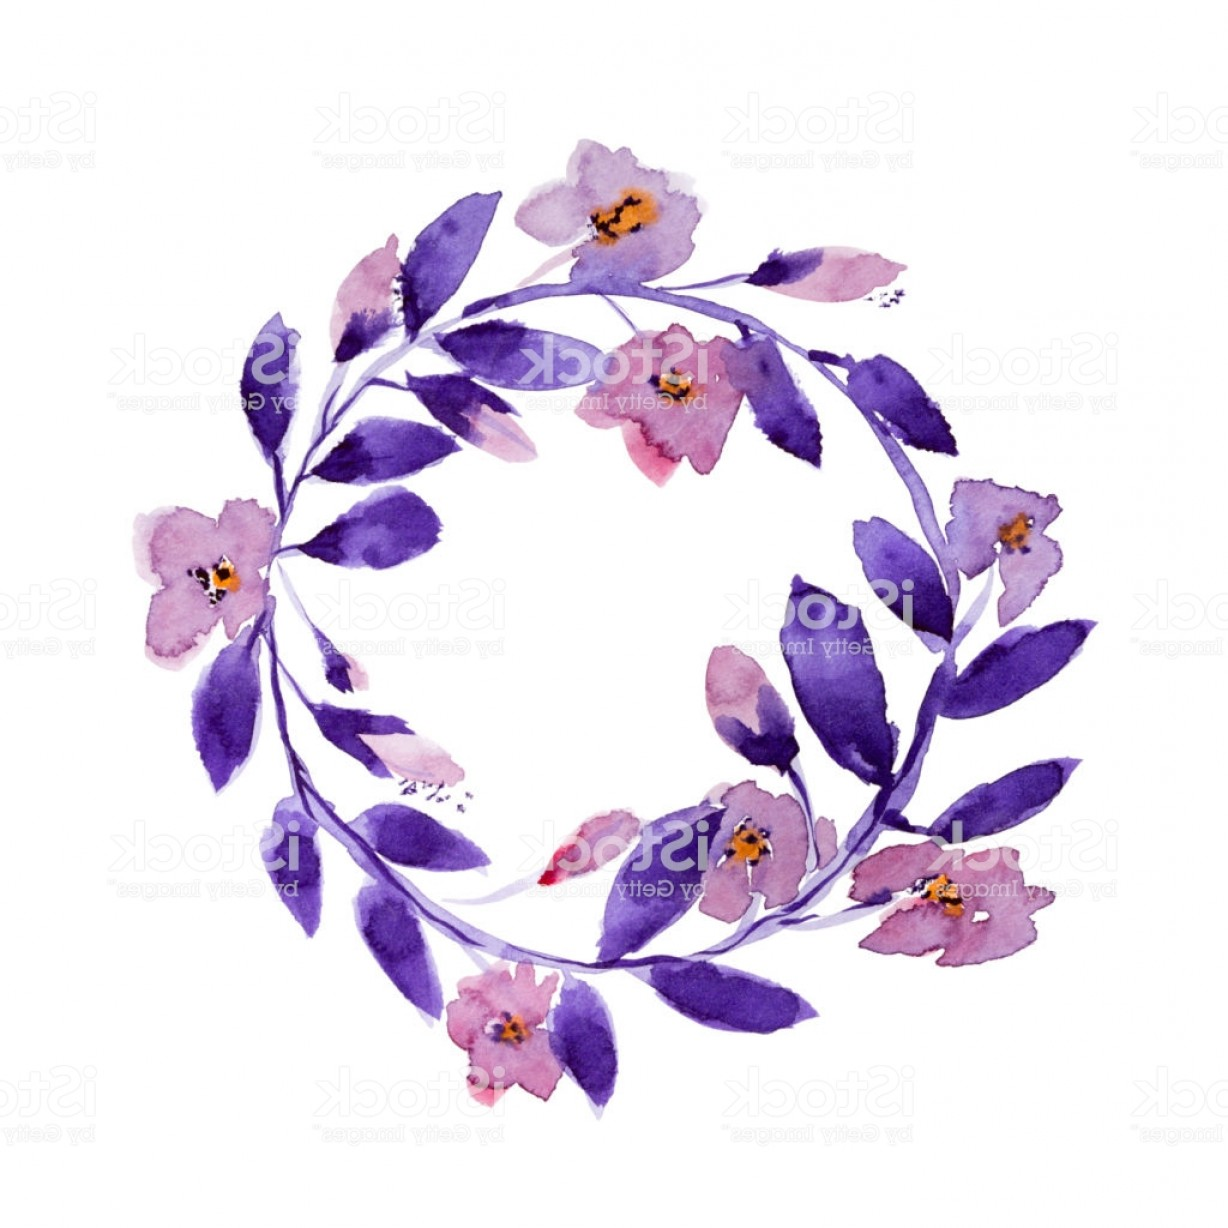 Summer Wreath Free Vector Watercolor: Floral Wreath In Watercolor Gm